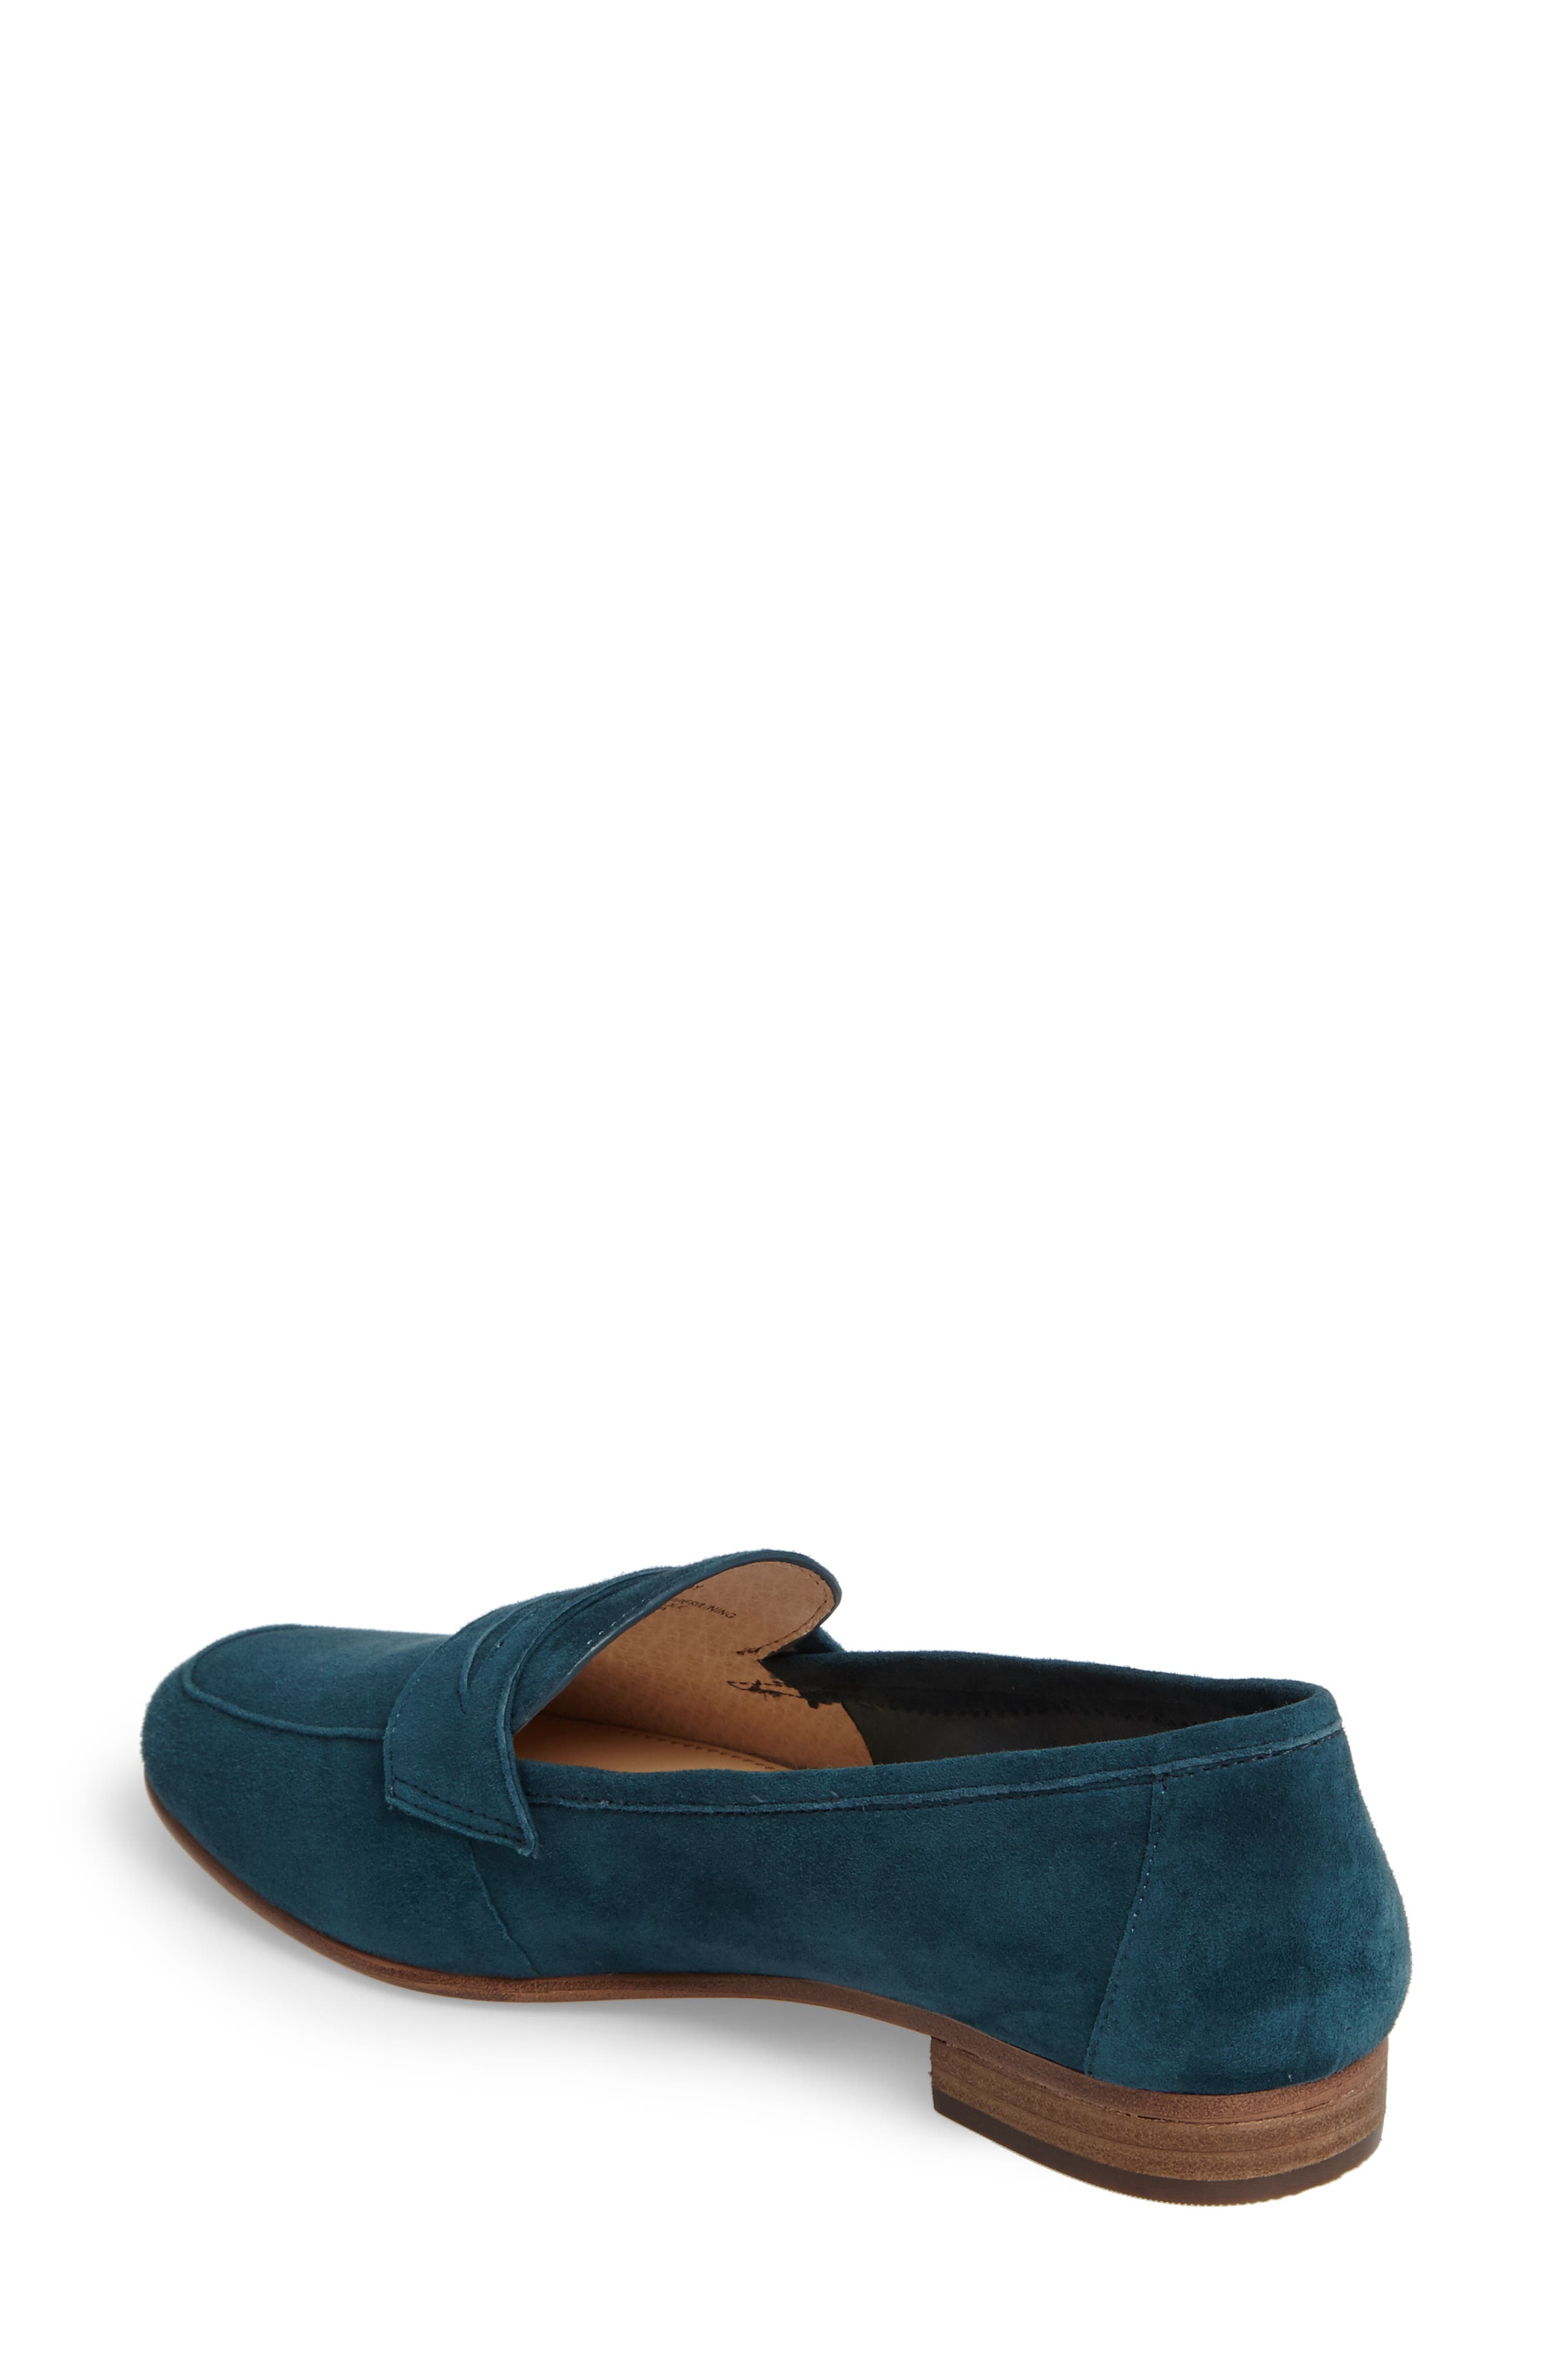 Elroy Penny Loafer,                             Alternate thumbnail 7, color,